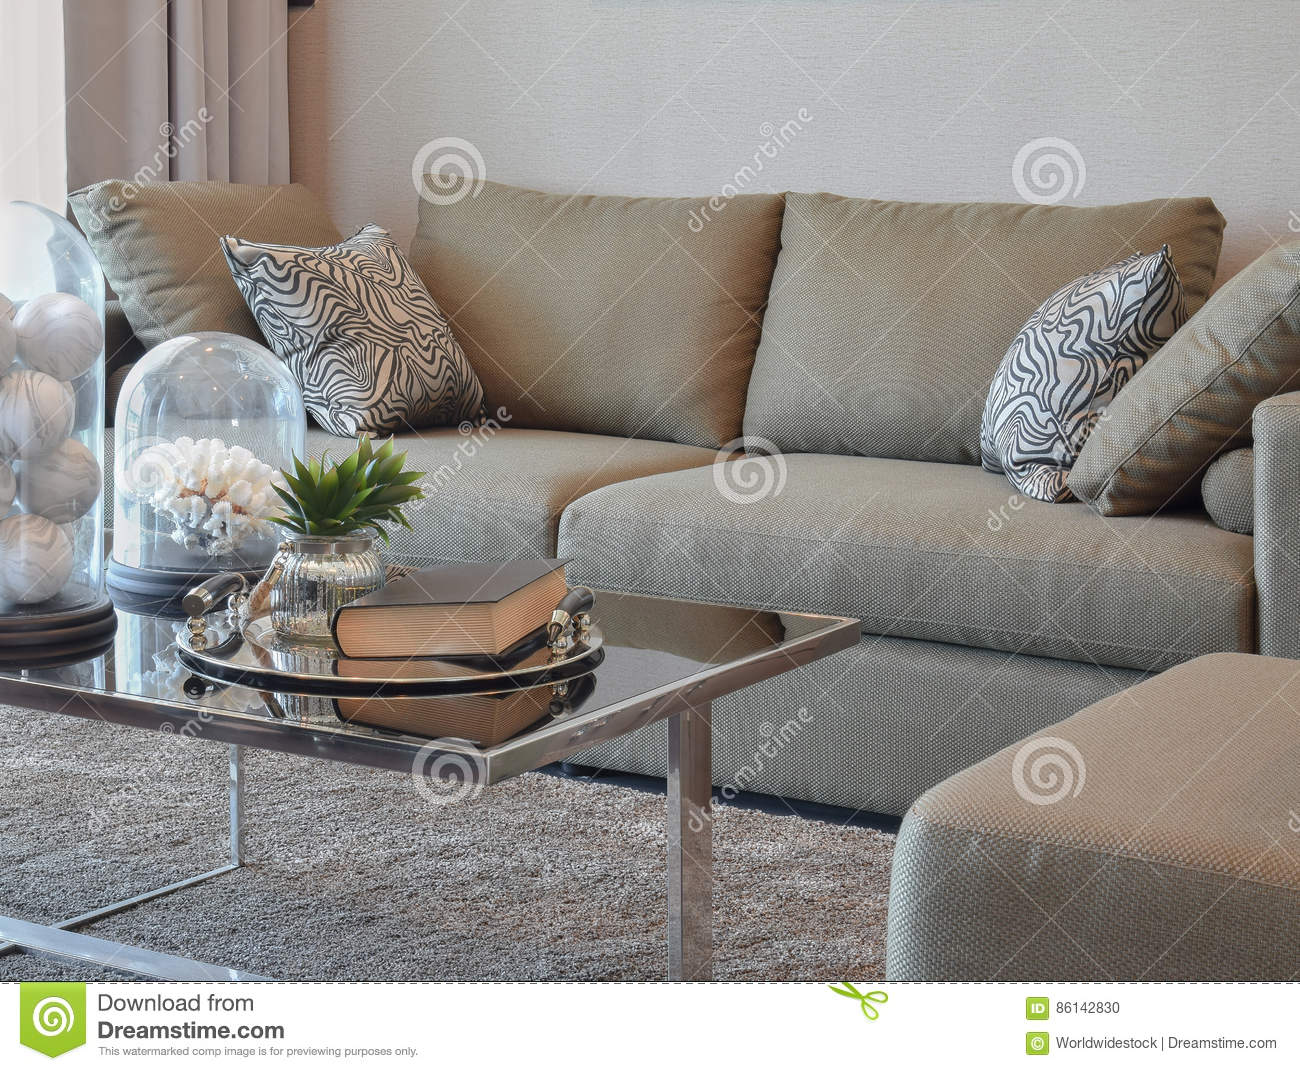 Comfortable Velvet Sofa With Grey Striped Pillows In Modern Living Room Stock Photo Image Of